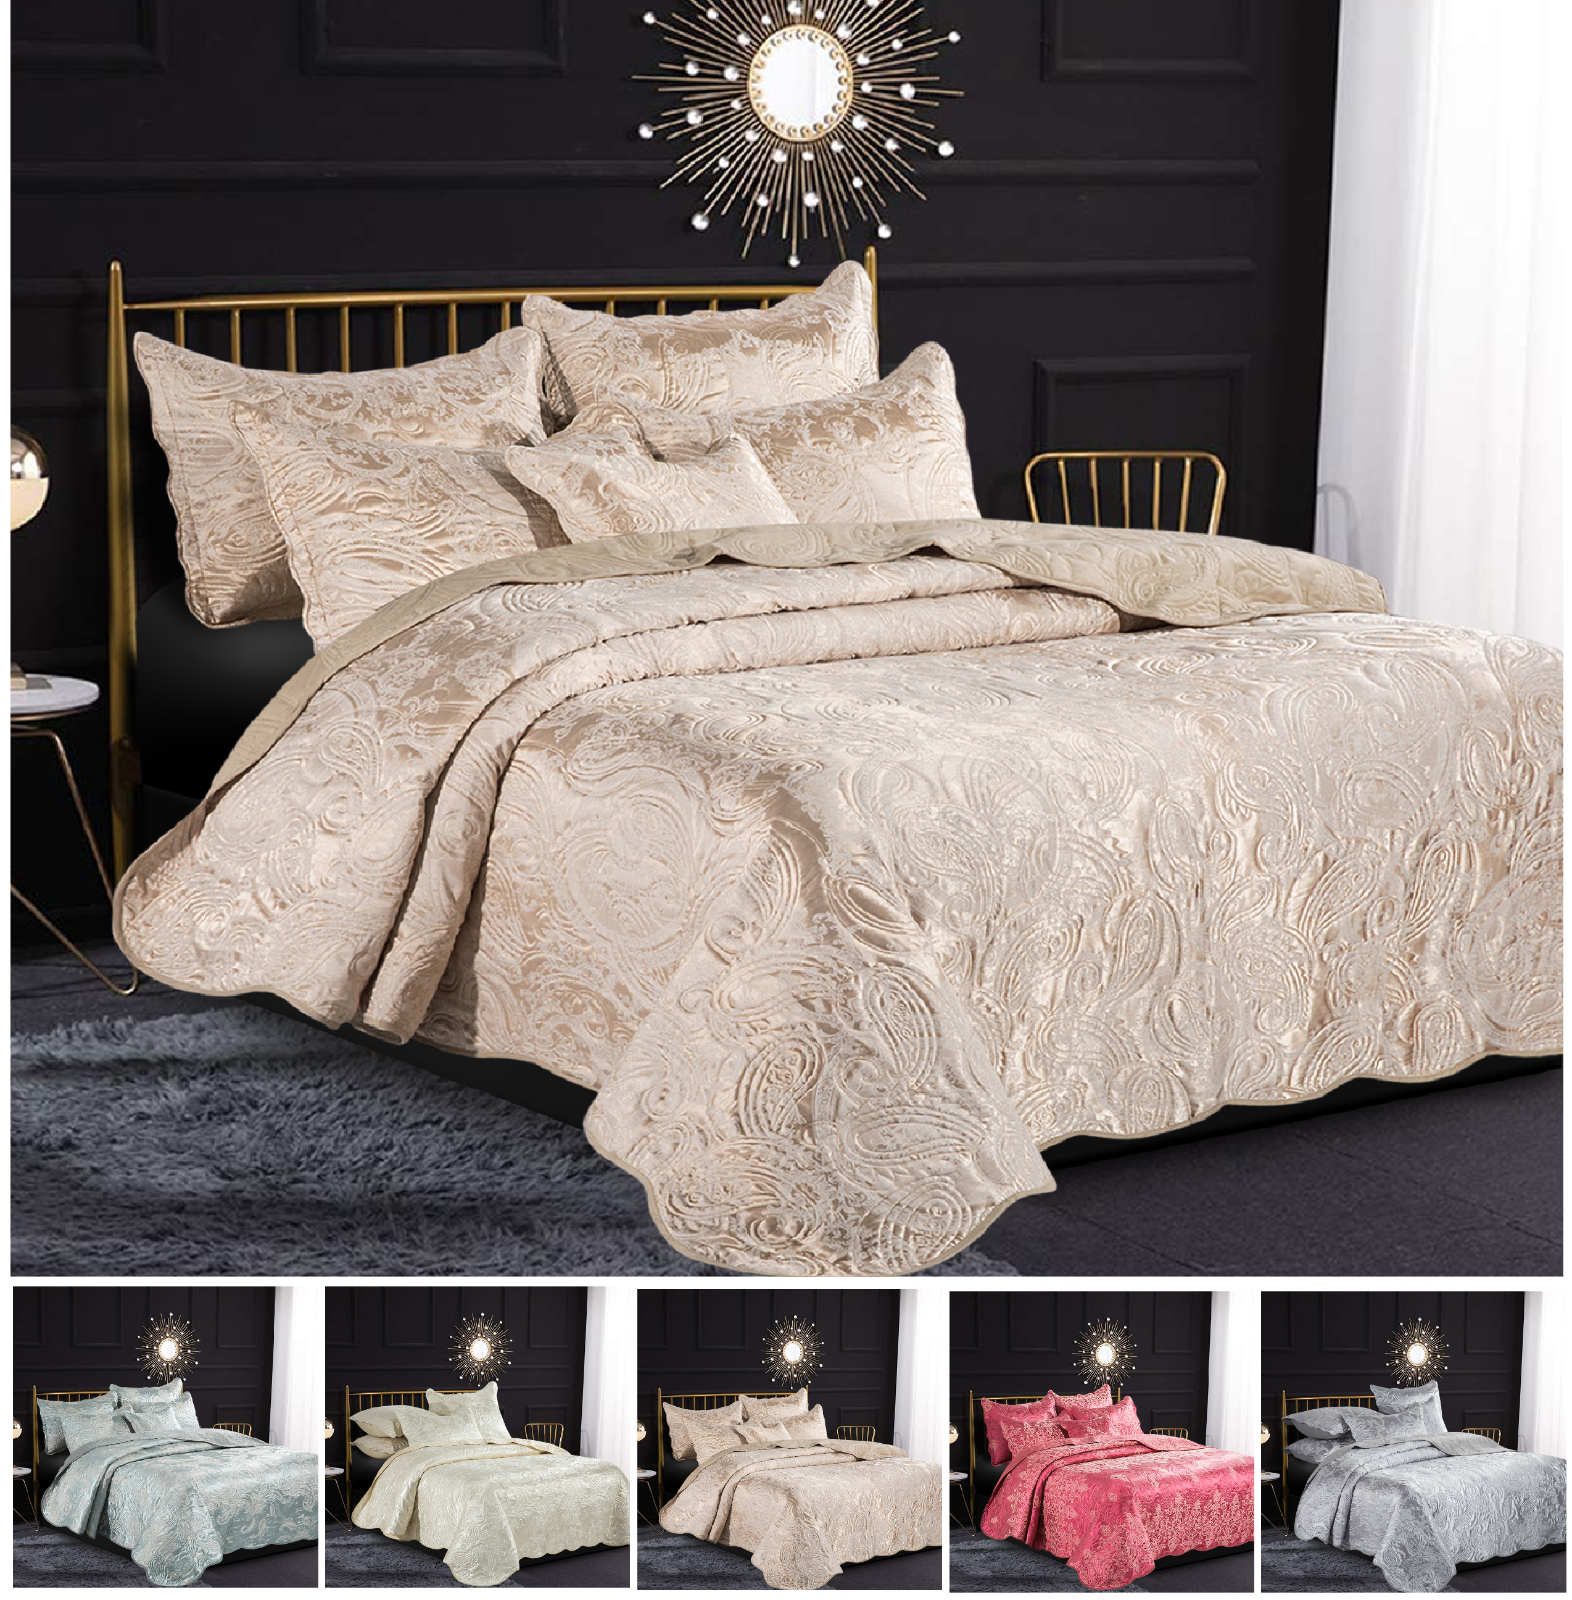 Luxury jacquard 3 piece Quilted Bedspread Coverlet Quilt Bed Cover with 2 Pillow Shams Set Luxor Cream, 3 PCs - Double